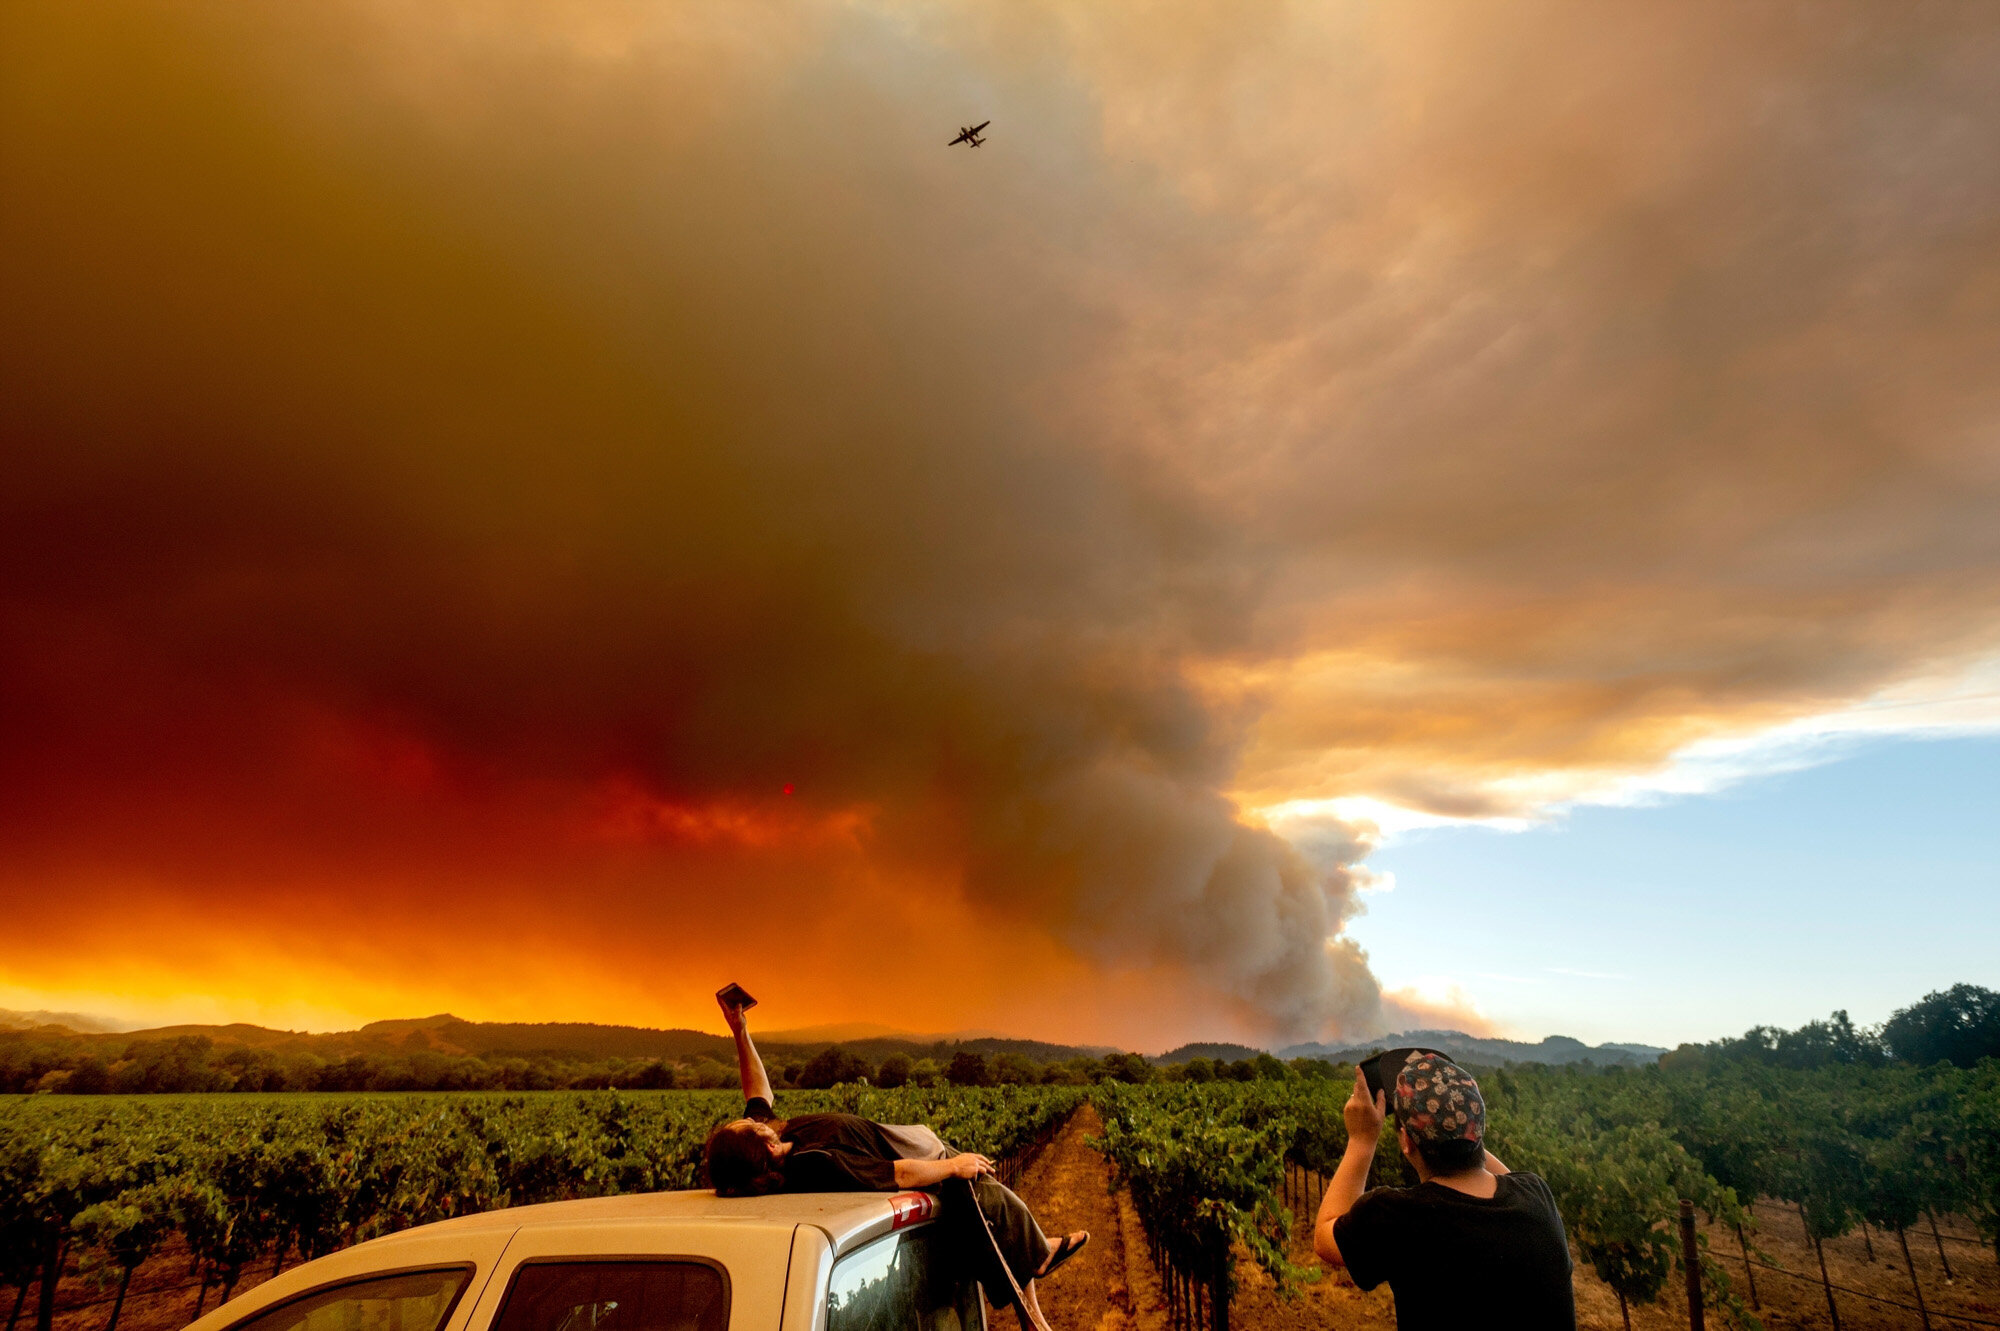 Thomas Henney, left, and Charles Chavira watch a plume of smoke spread over Healdsburg, Calif., as wildfires burn nearby on Aug. 20, 2020. Deadly wildfires in California more than doubled the previous record for the most land burned in a single year in the state. (AP Photo/Noah Berger)